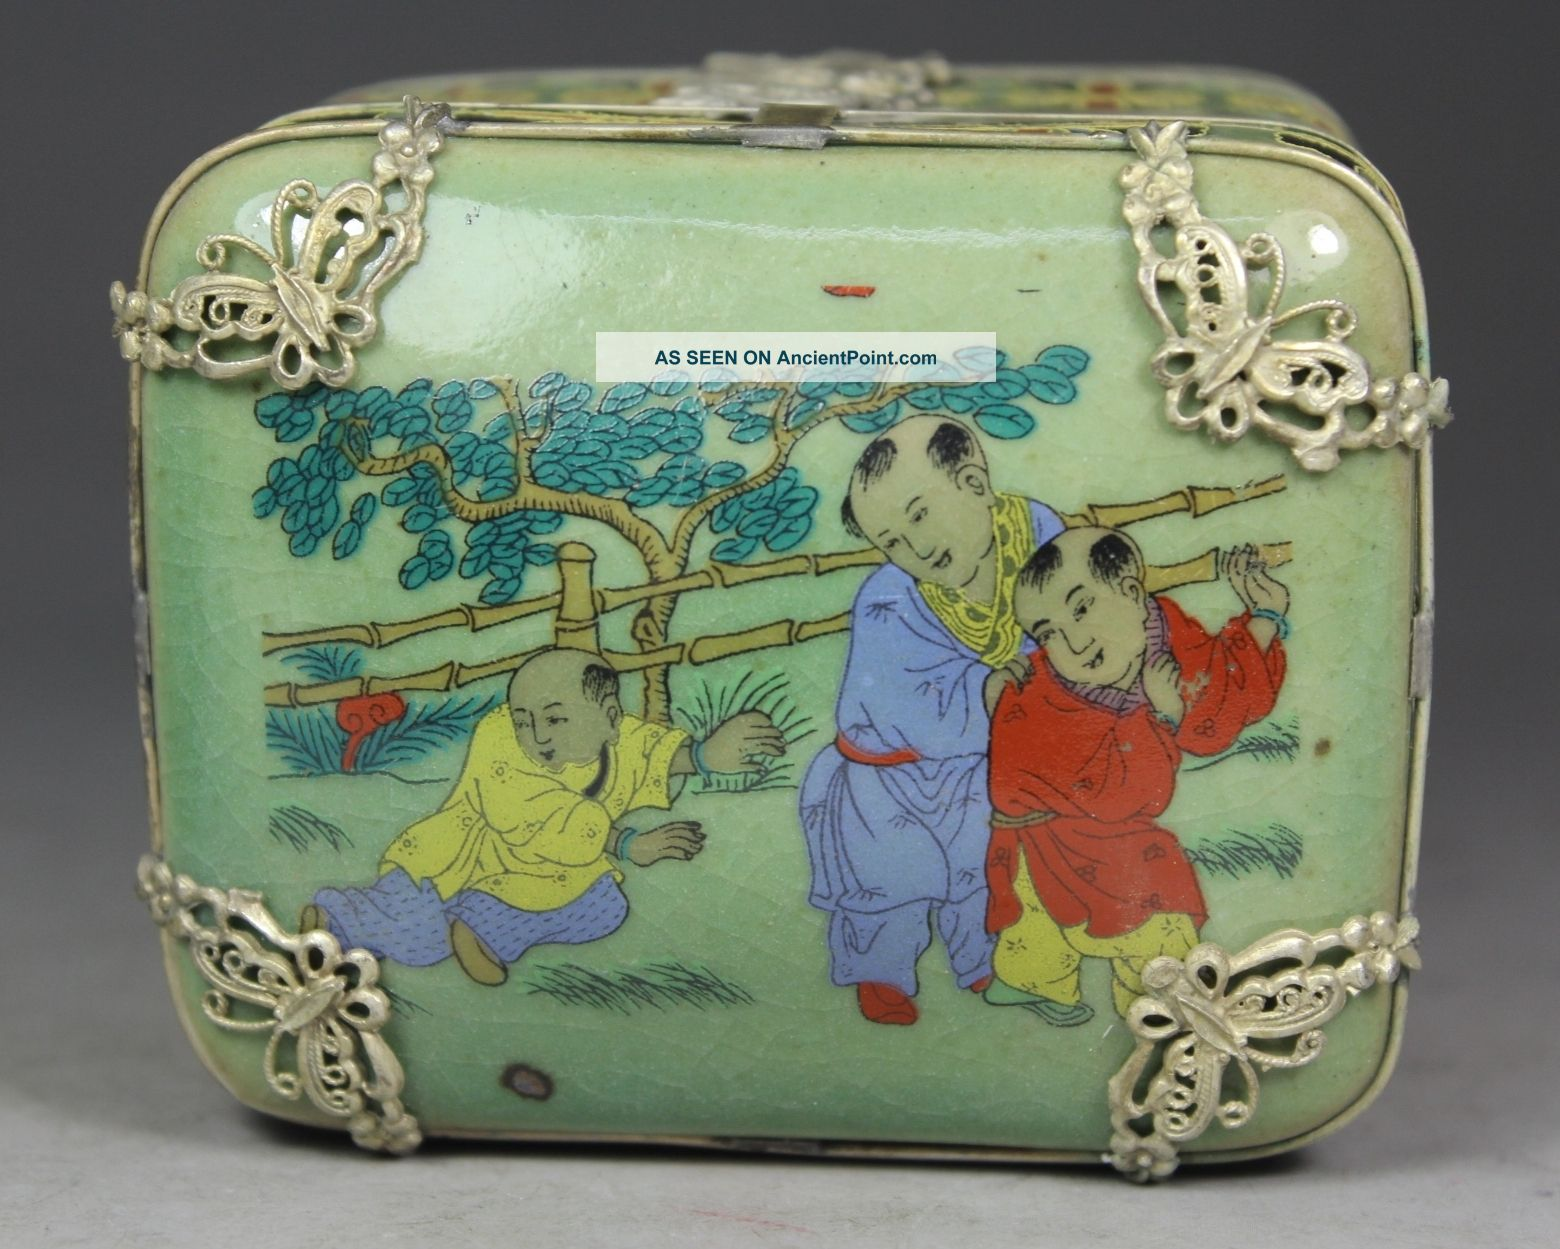 Chinese Old Porcelain Handwork Painting Favorite Armored Butterfly Jewel Box Boxes photo